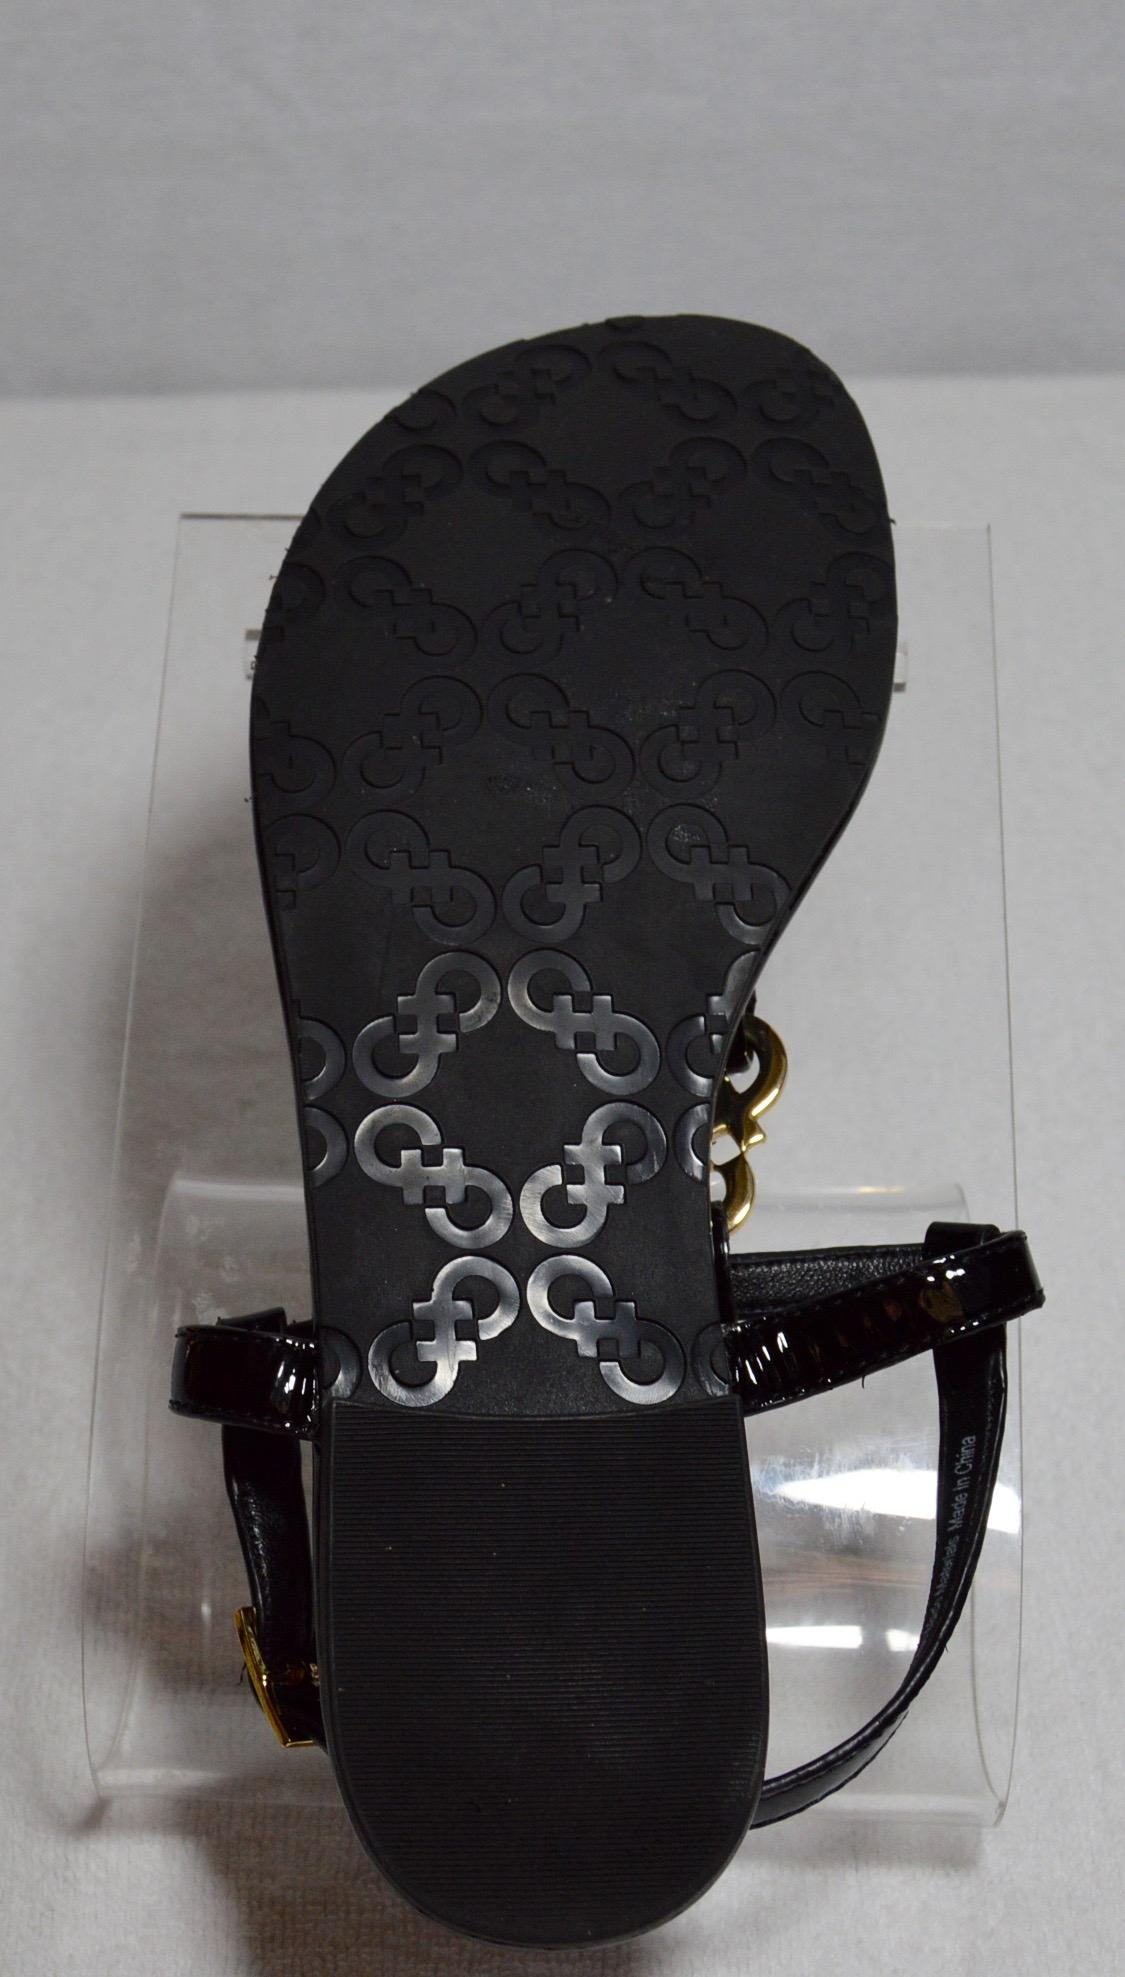 fffc5d5f2 ... B Cole Haan Black New Ally Sandals Size Size Size US 6.5 Regular (M